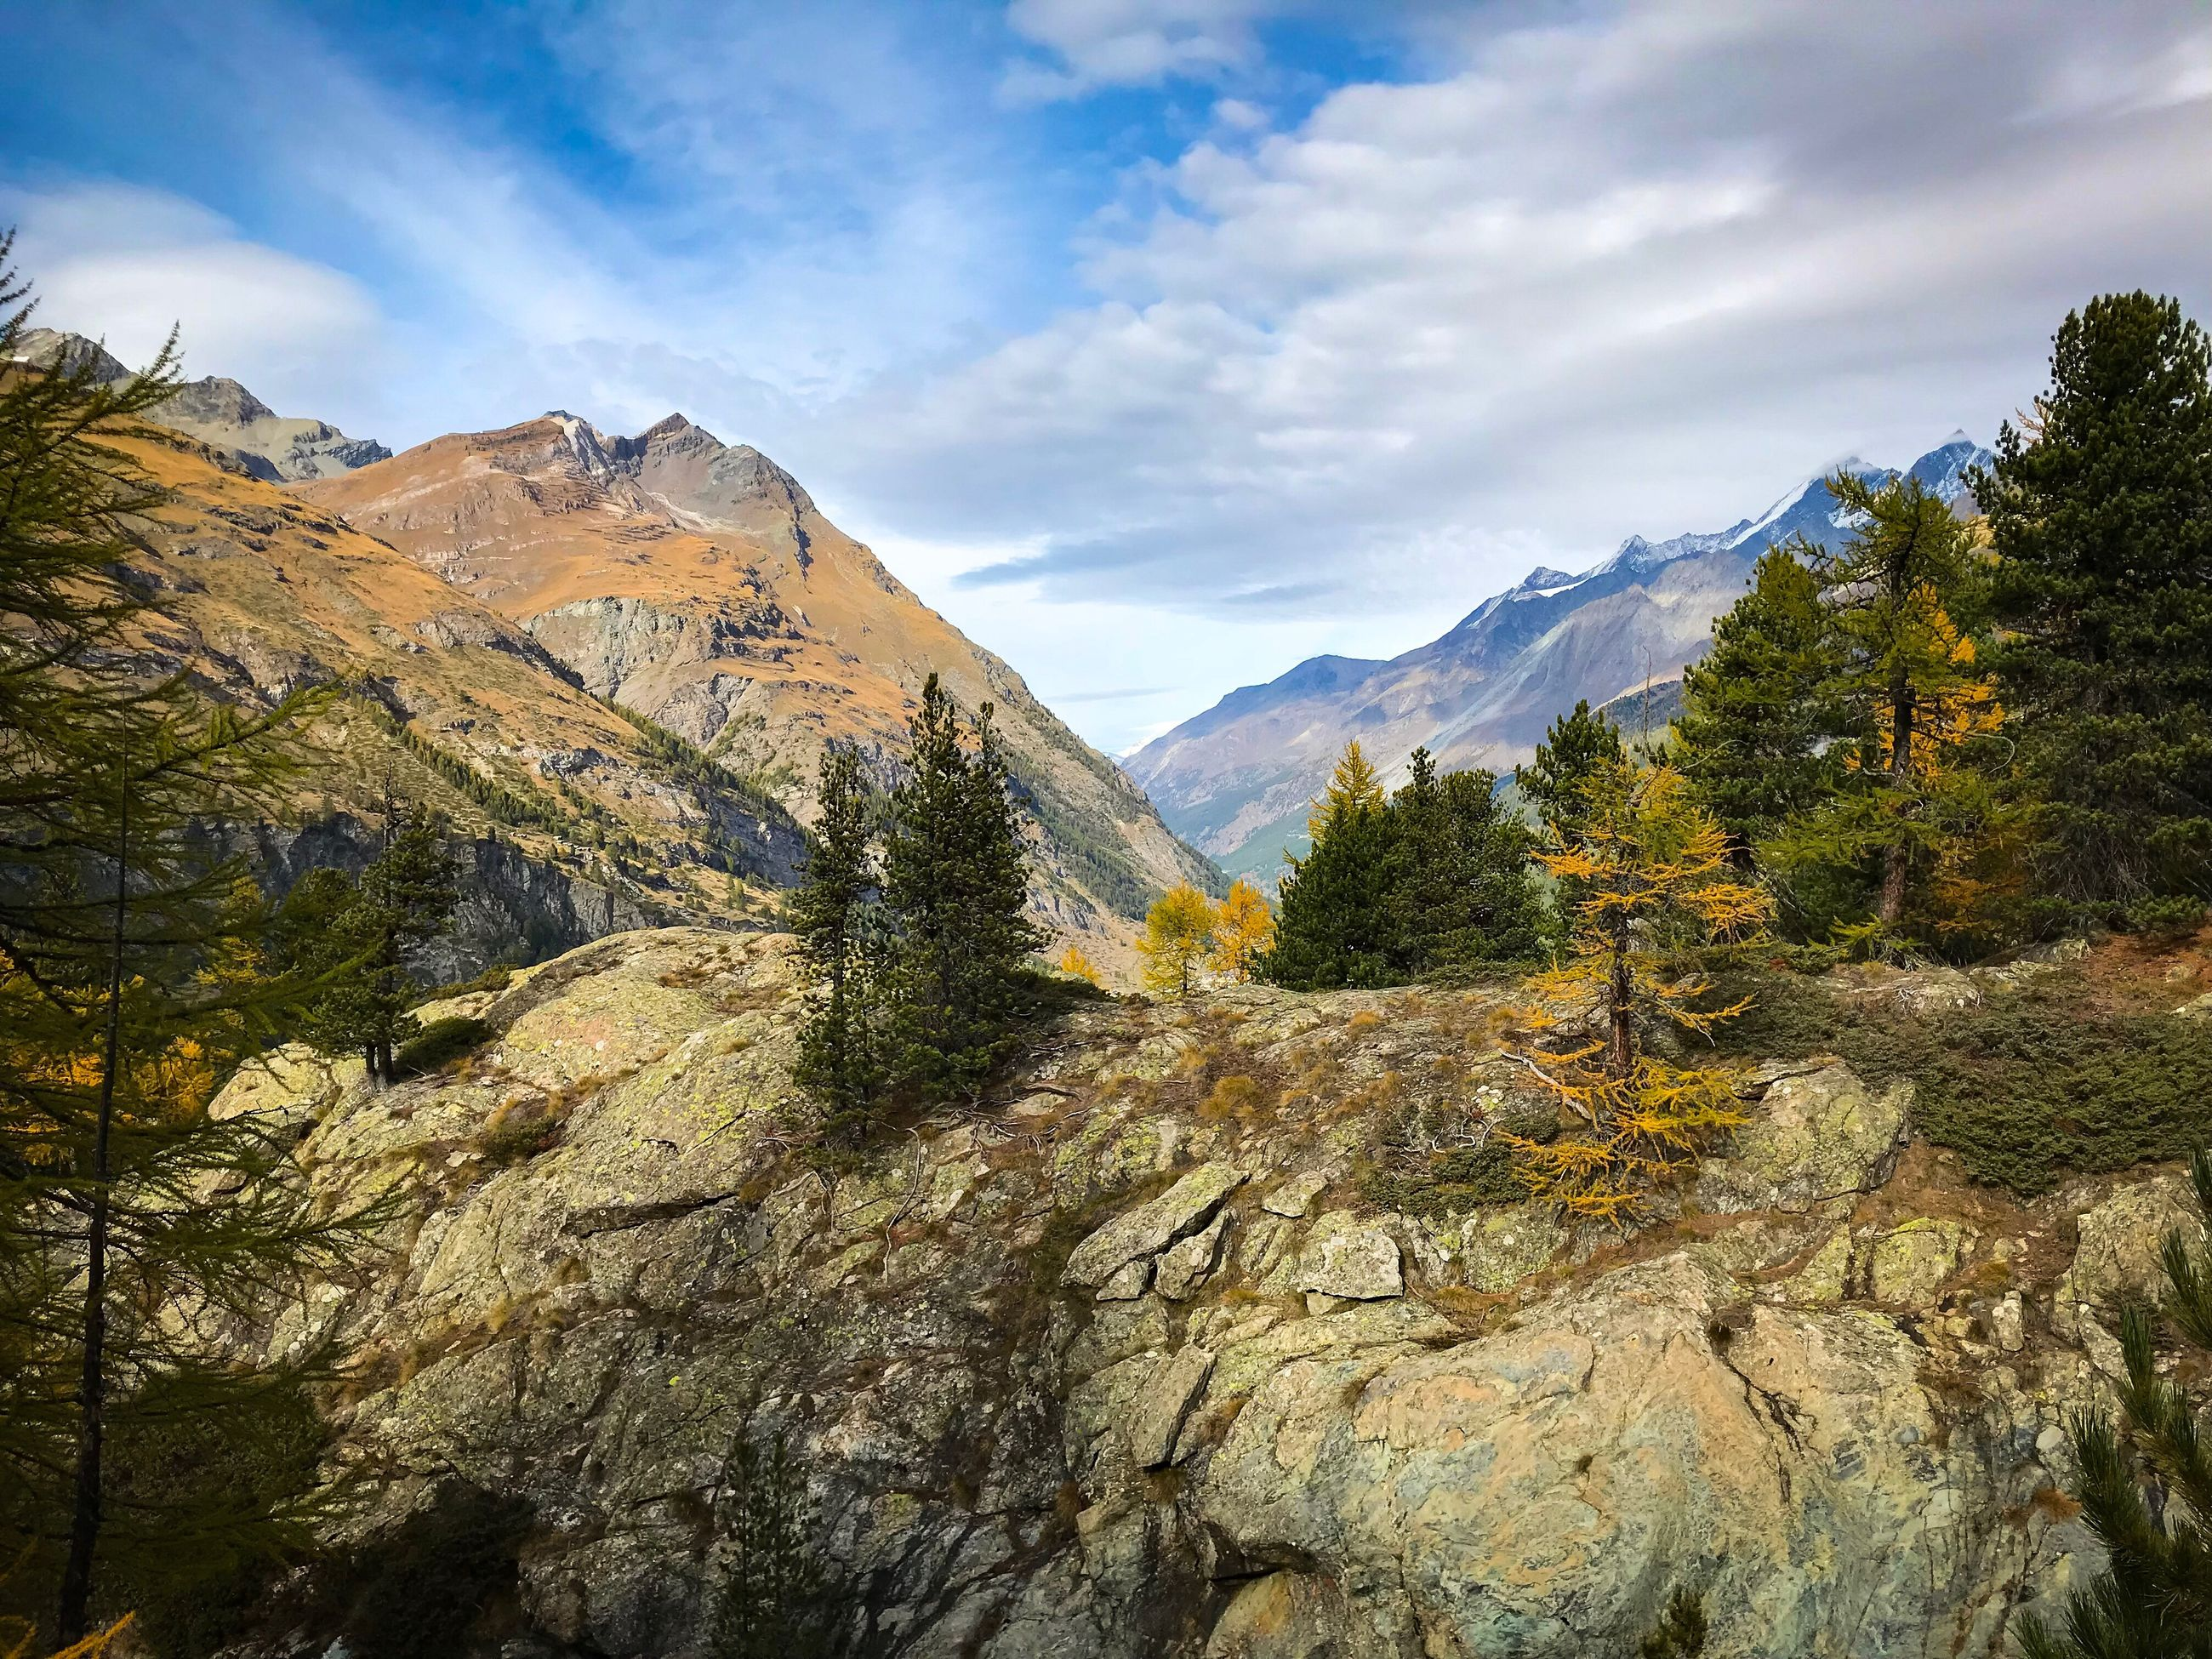 nature, scenery, mountain, landscape, sky, beauty in nature, no people, outdoors, tree, day, range